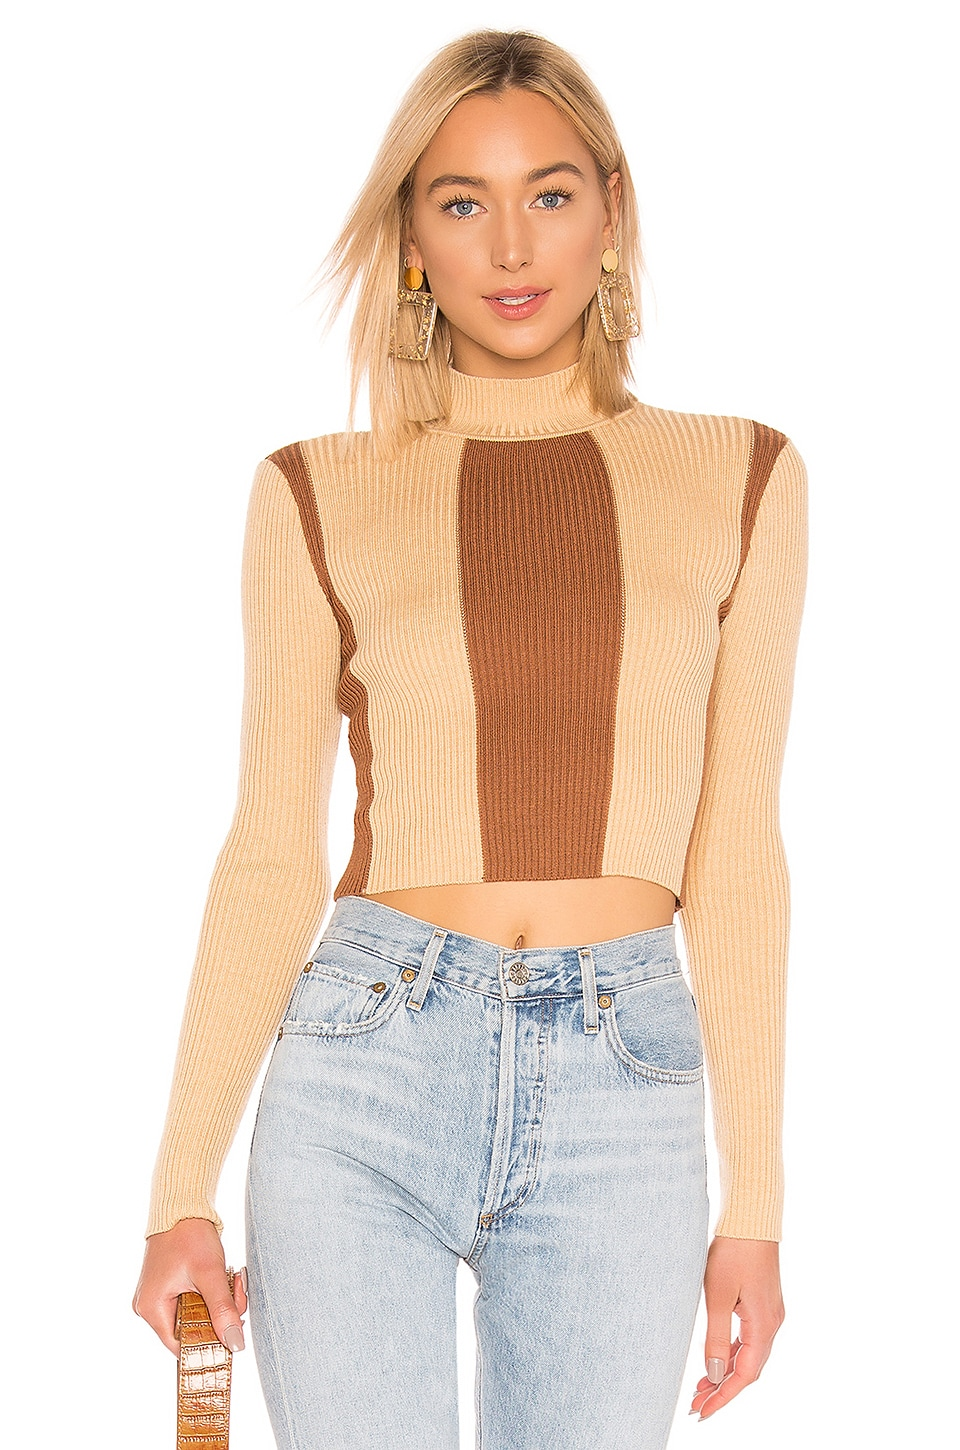 House of Harlow 1960 X REVOLVE Night Out Sweater in Tonal Tan